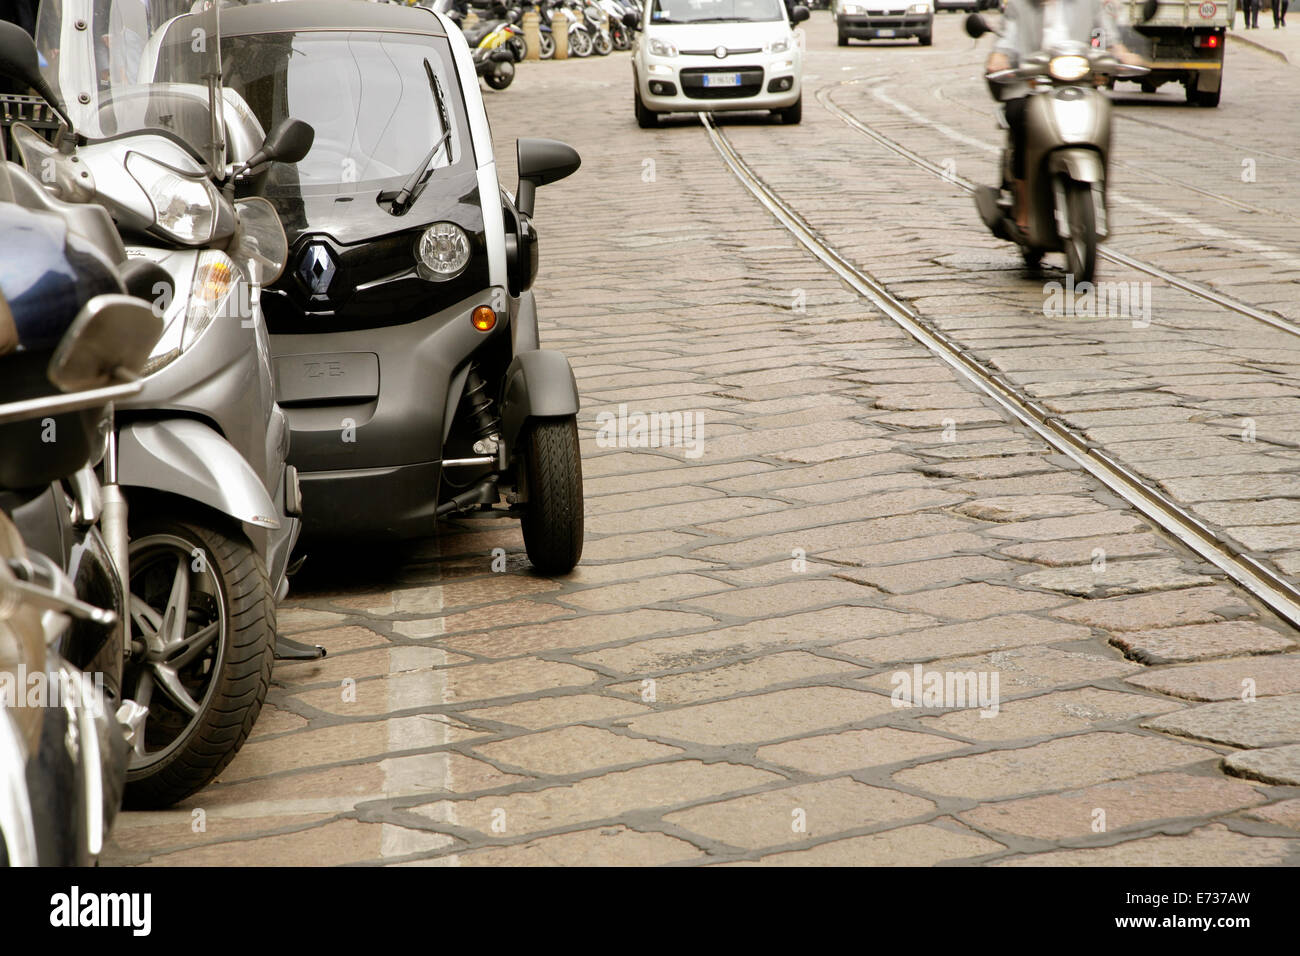 Motorscooter passing Renault Twizy electric microcar near La Scala, Milan, Italy. Stock Photo